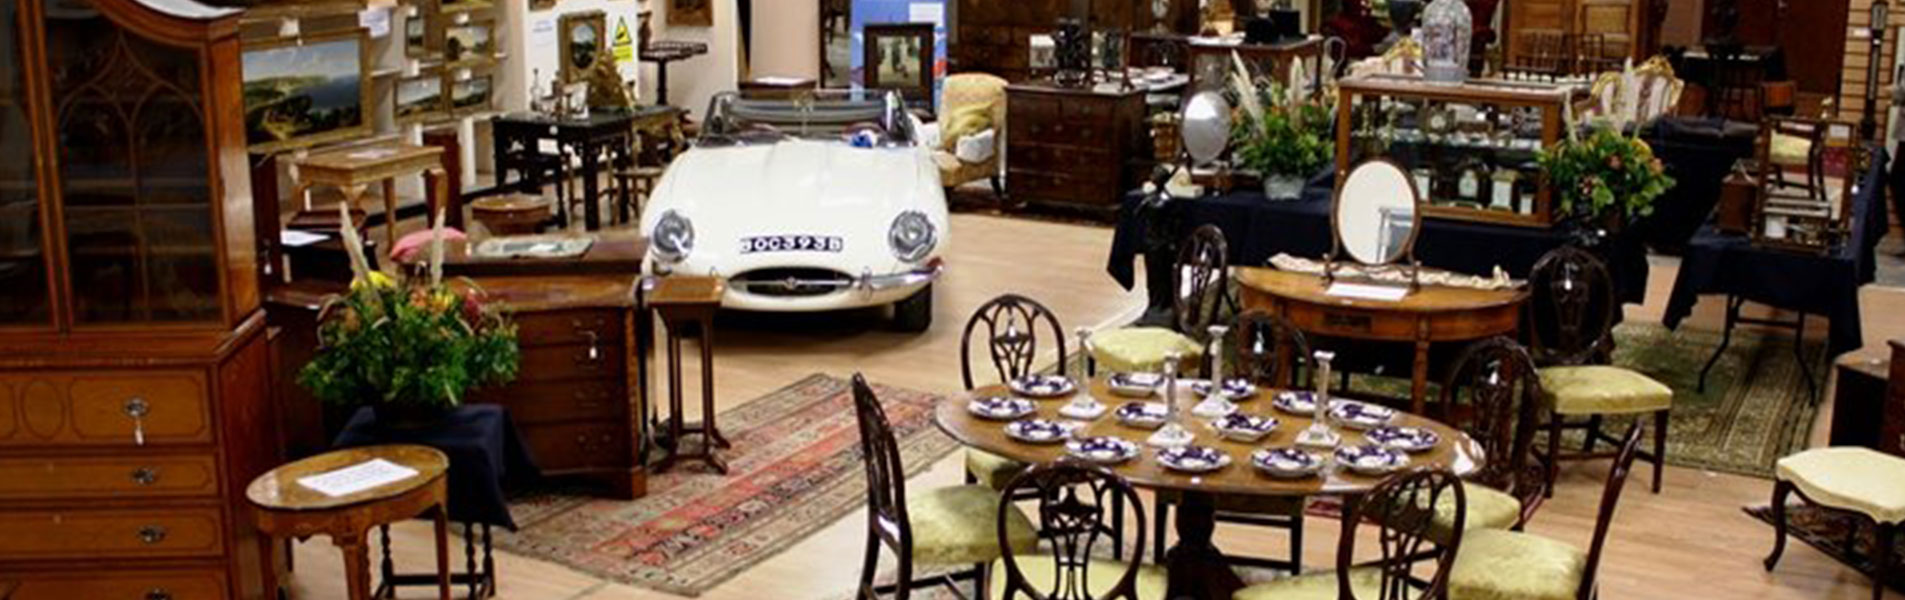 Furniture Auctions in Johannesburg